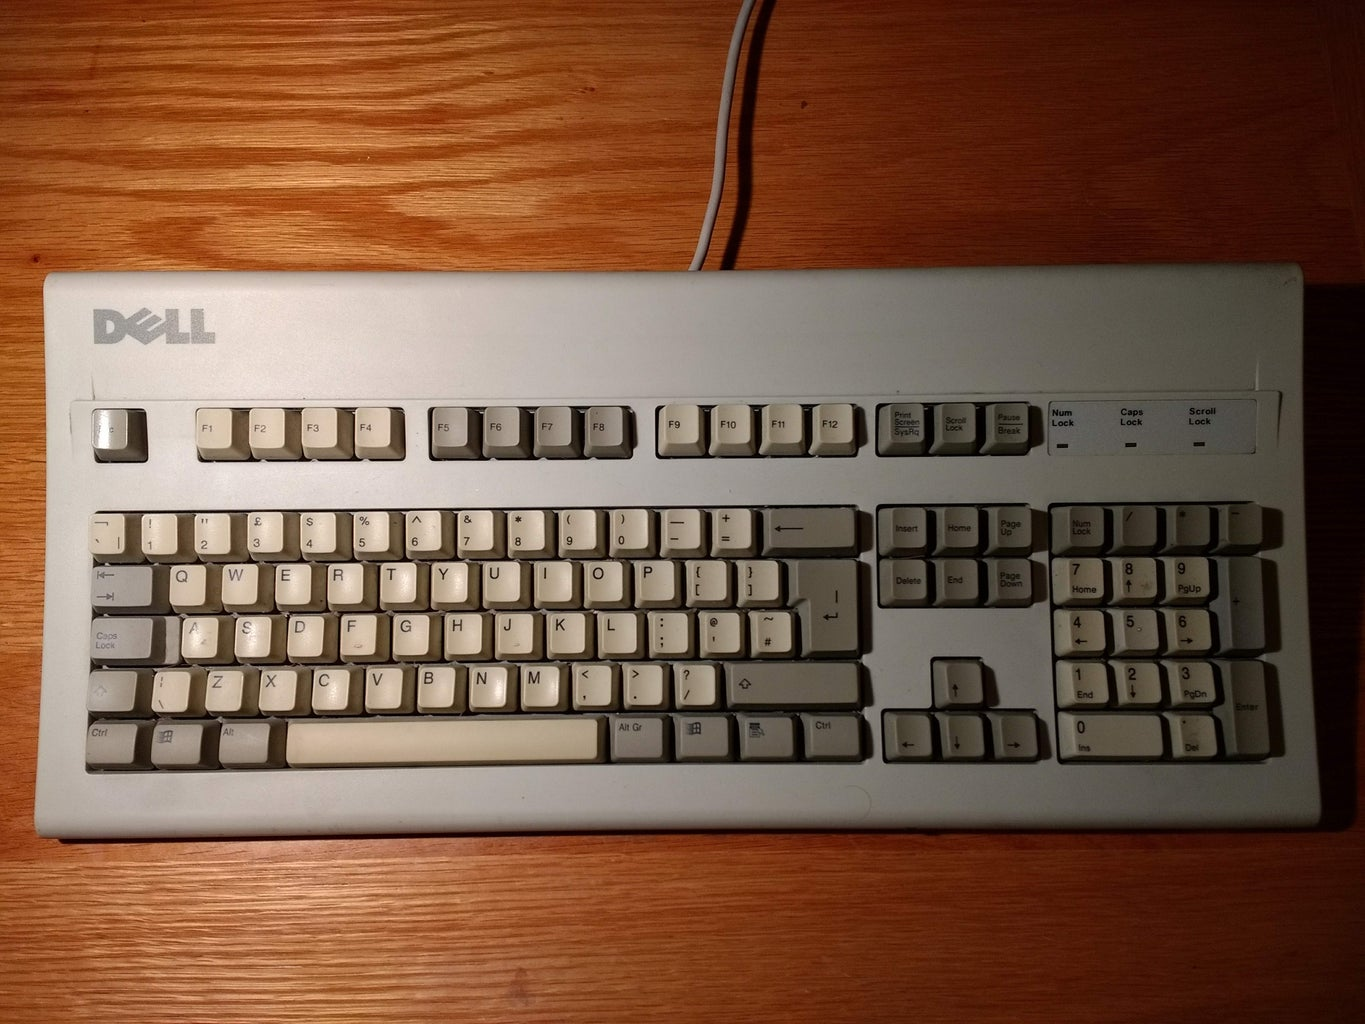 Choosing and Buying Your Keyboard